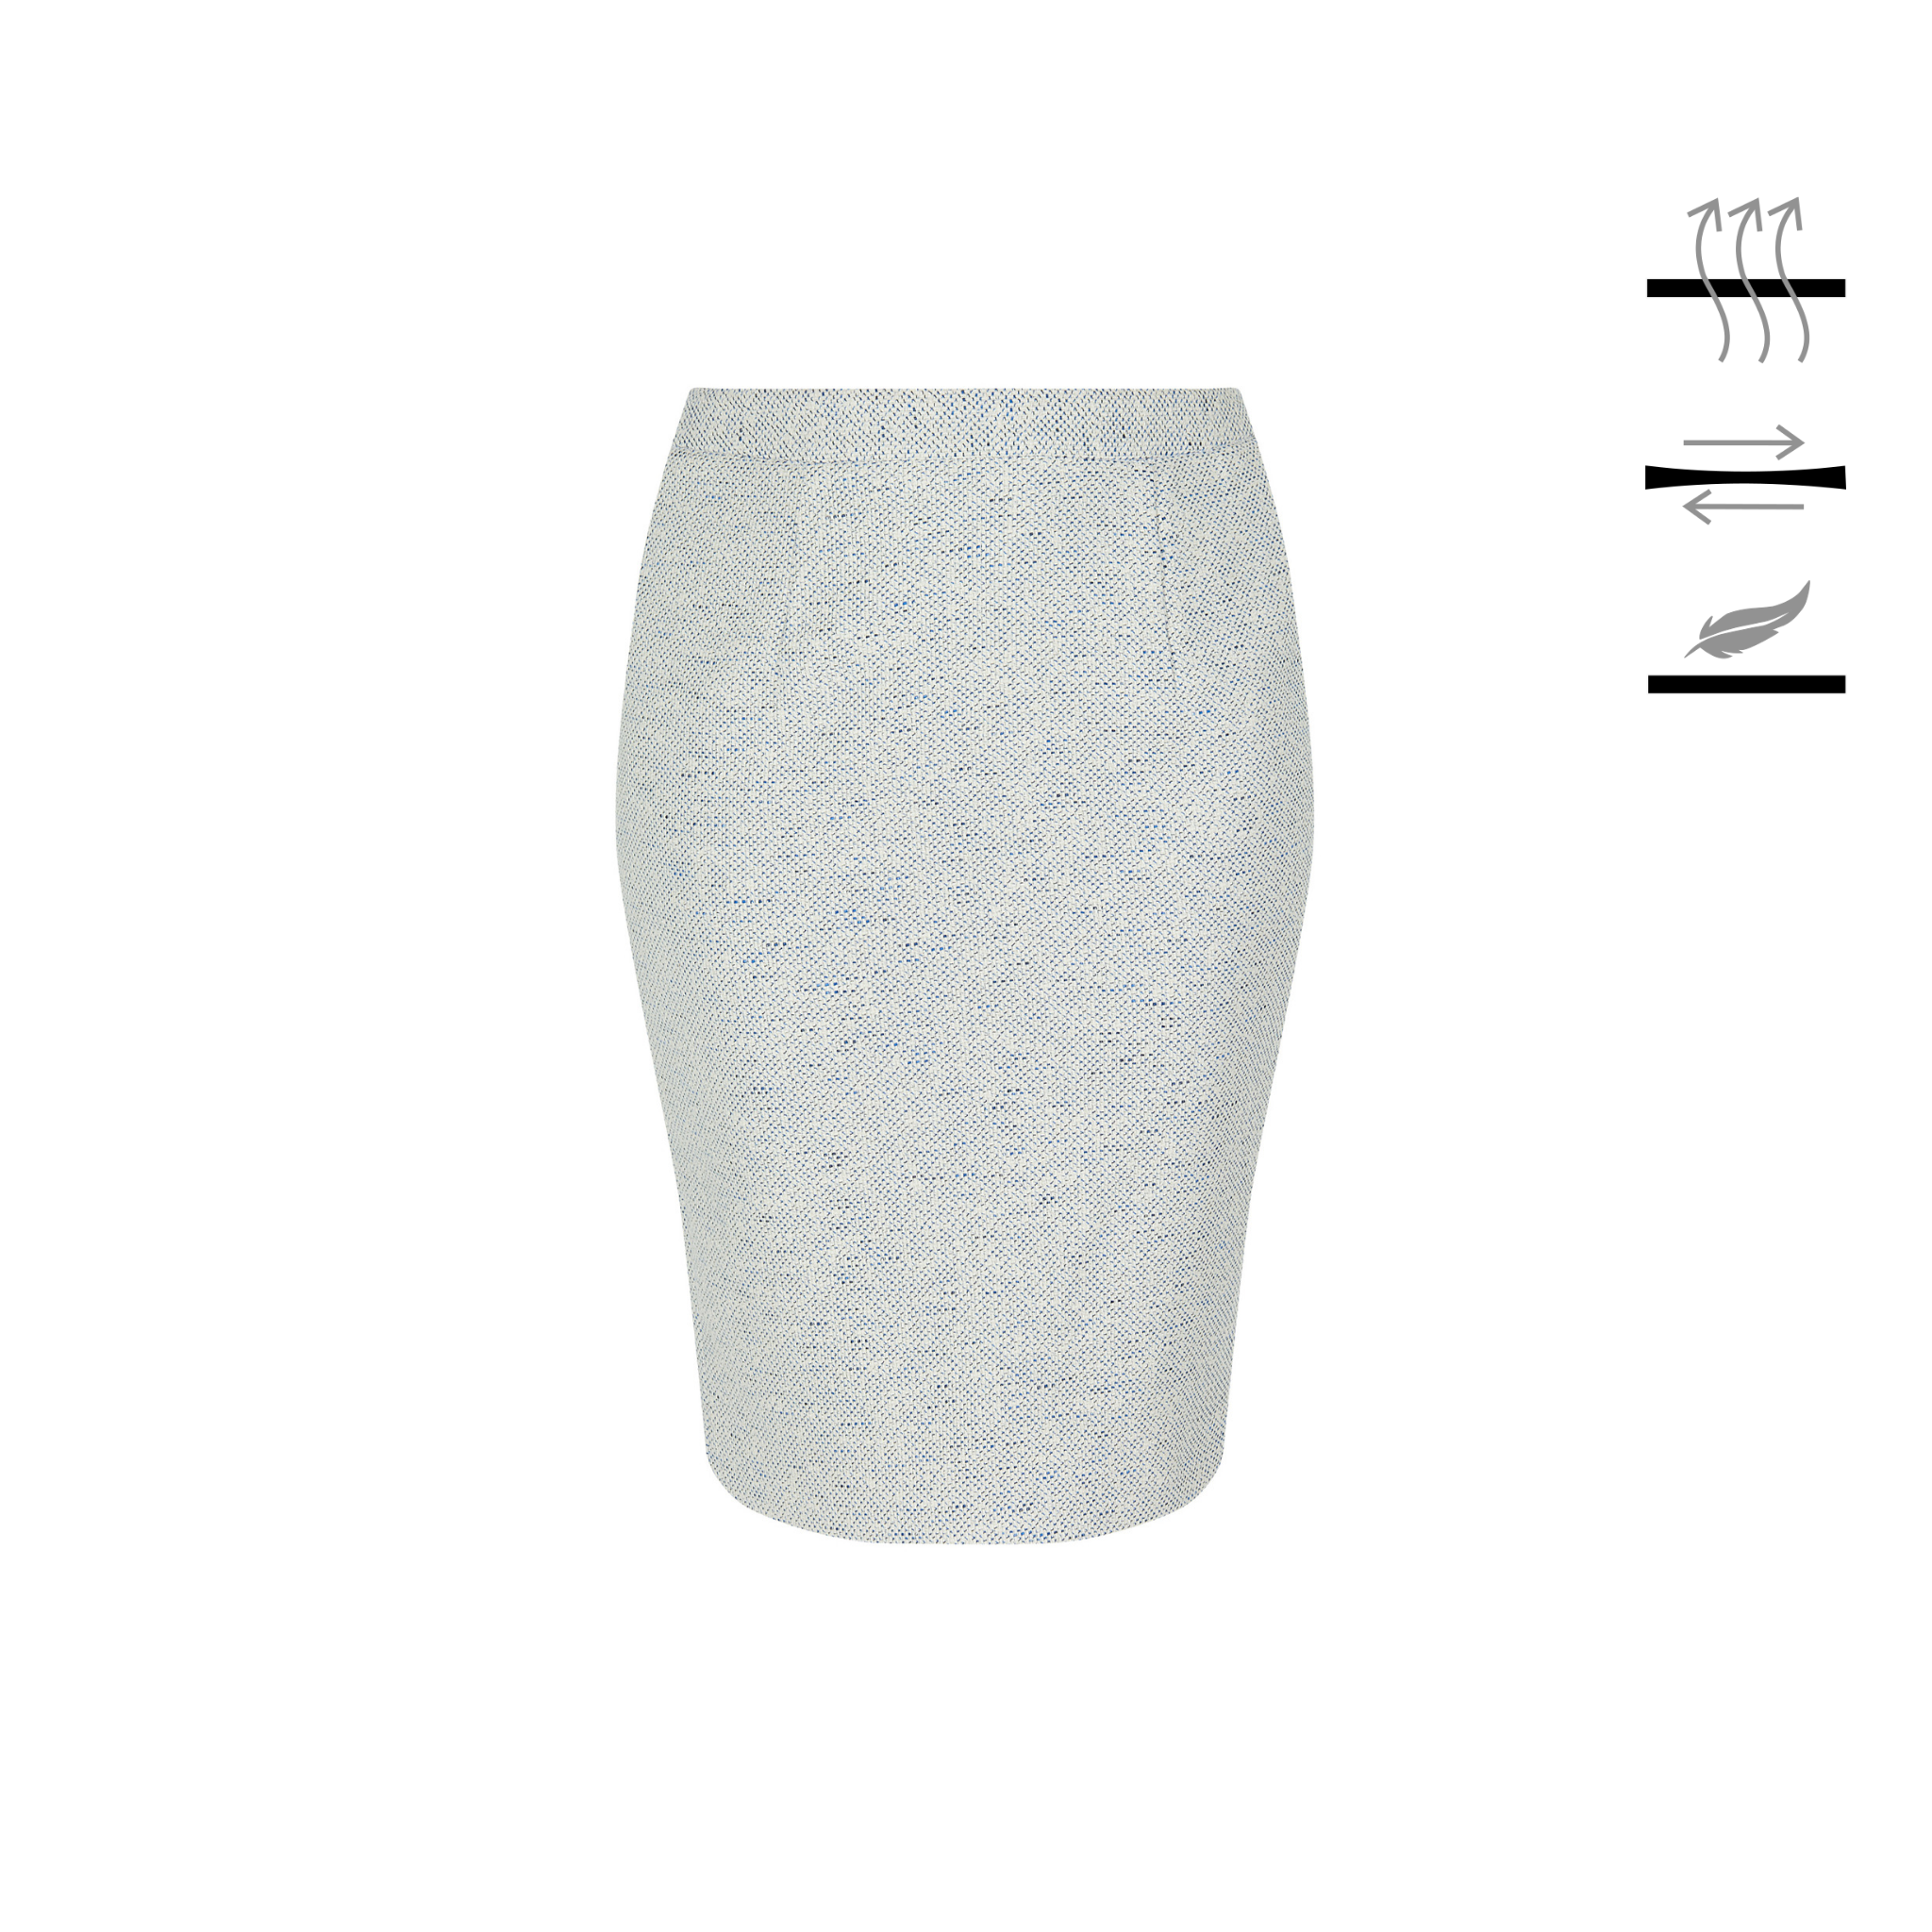 Pencil skirt finished for unrestricted movement and next-to-skin comfort, limited edition white and blue tweed